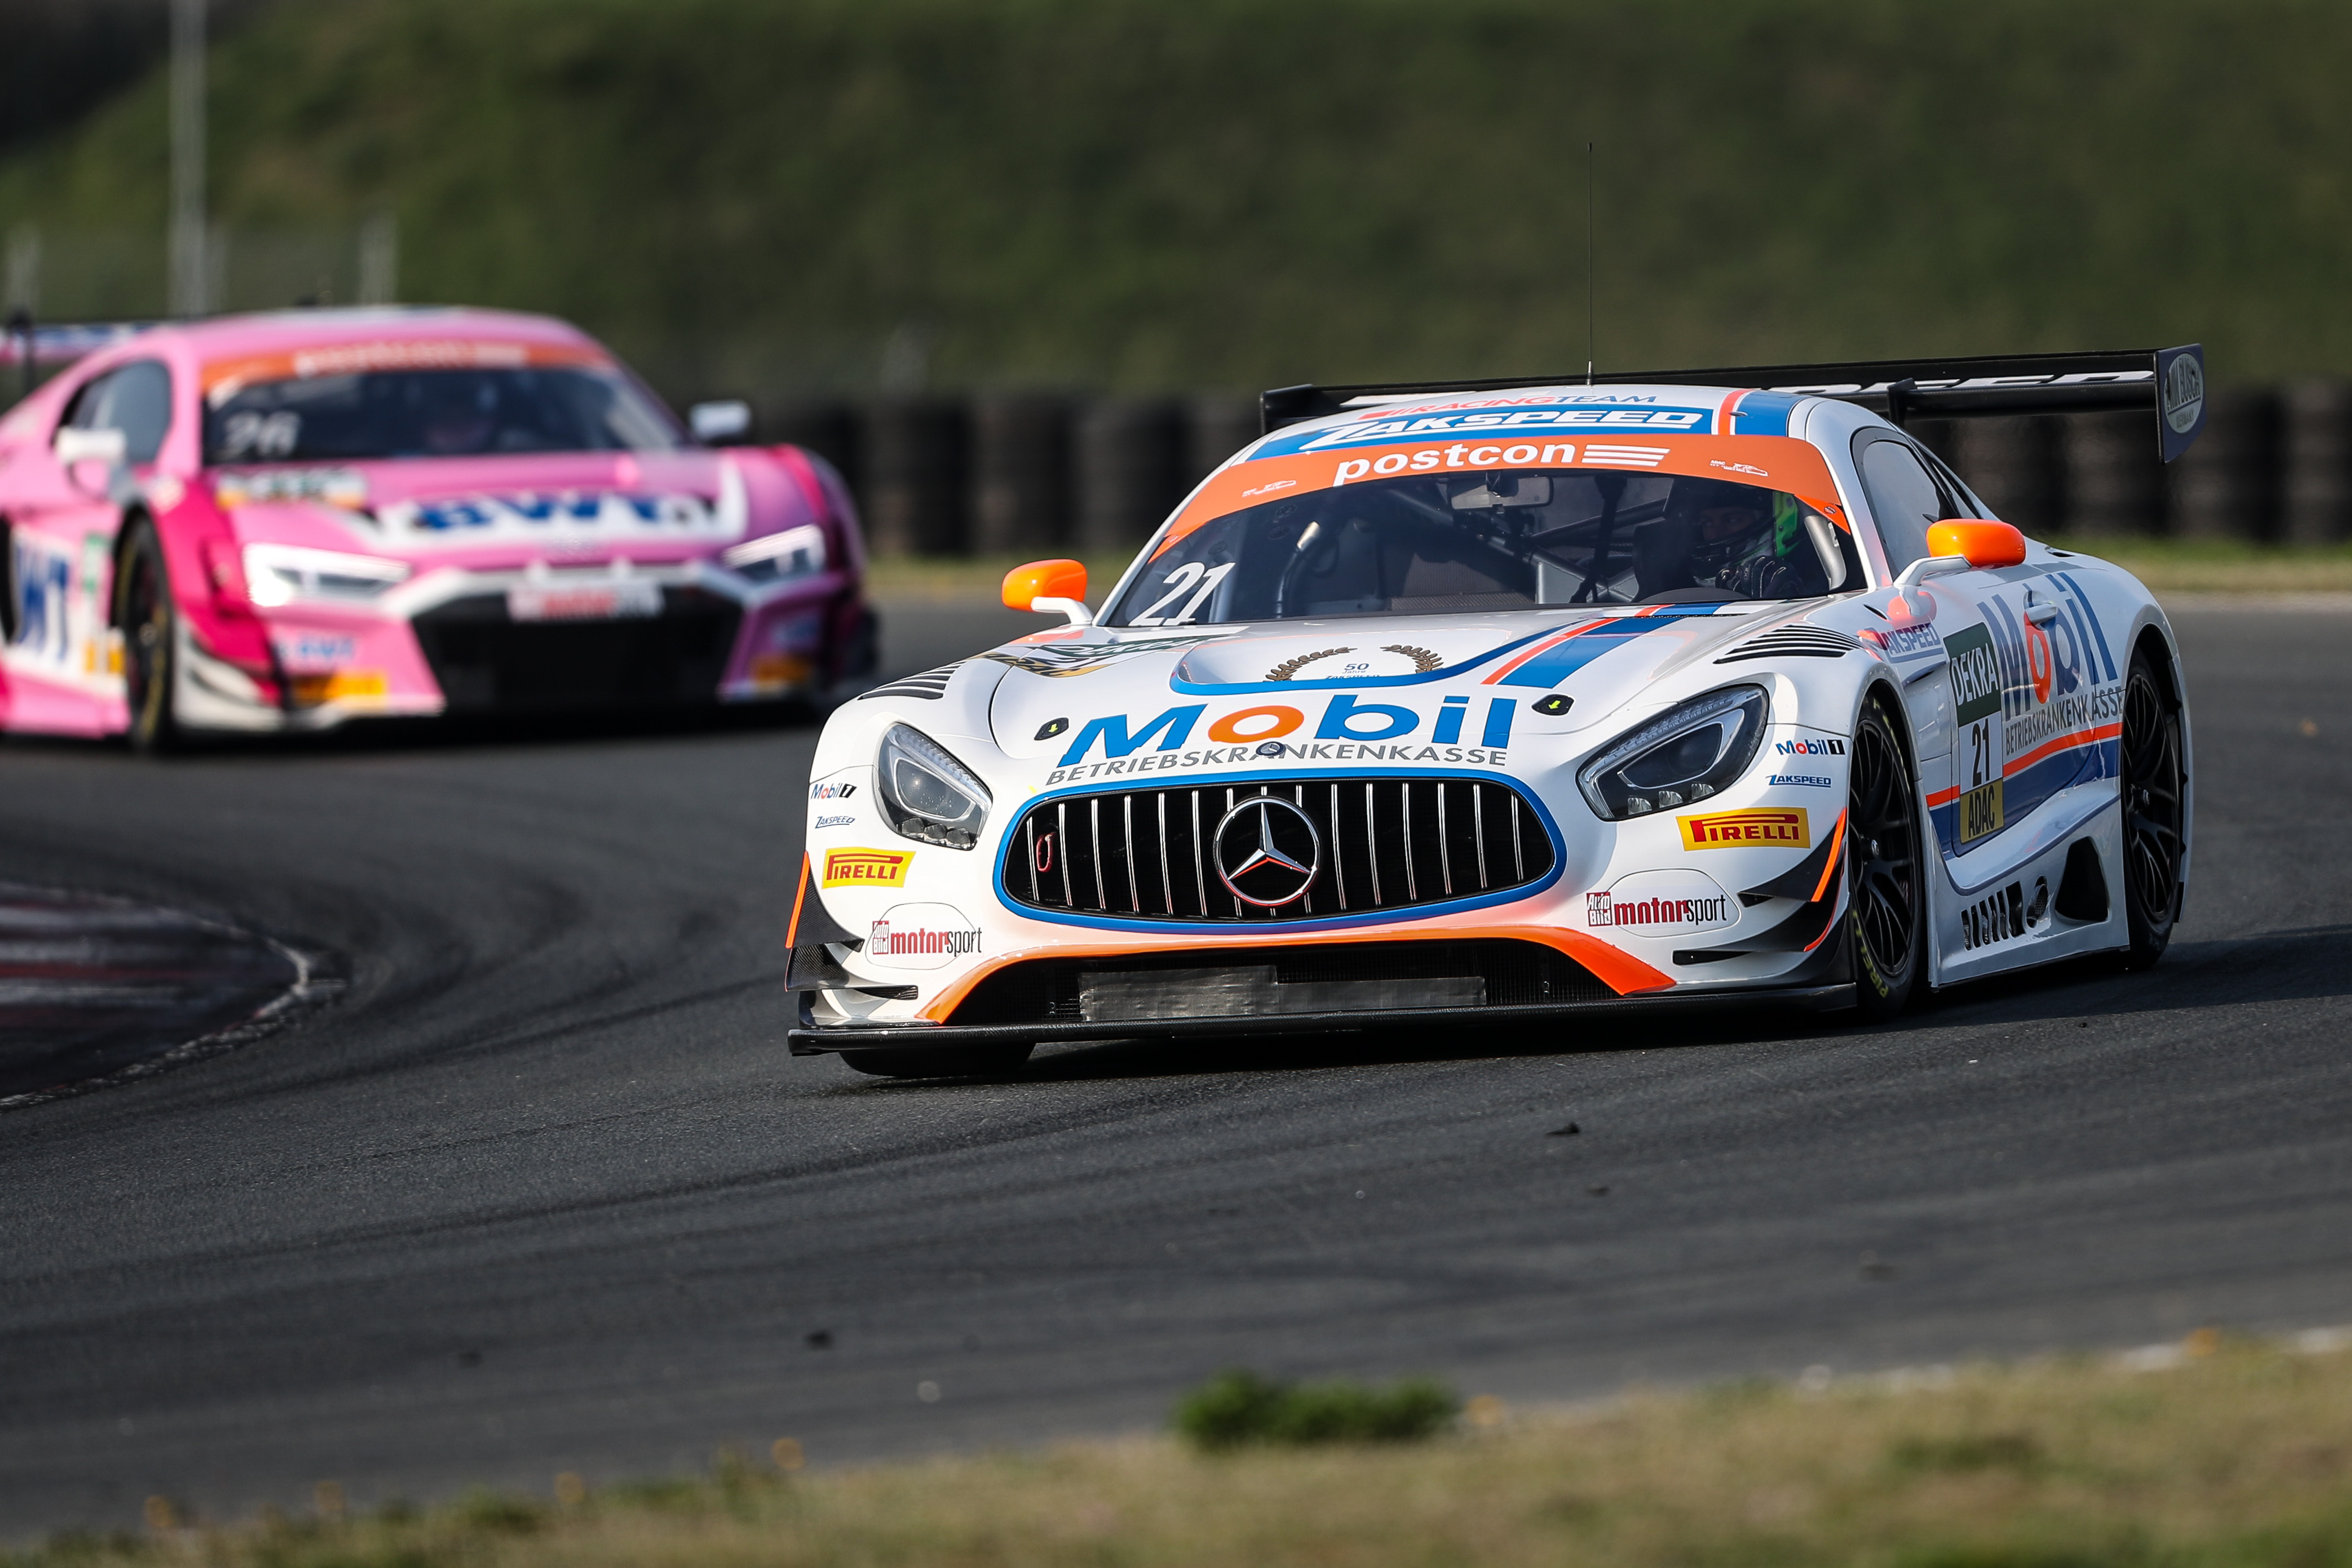 Enthusiastic Jimmy Eriksson relishing fresh start in ADAC GT Masters